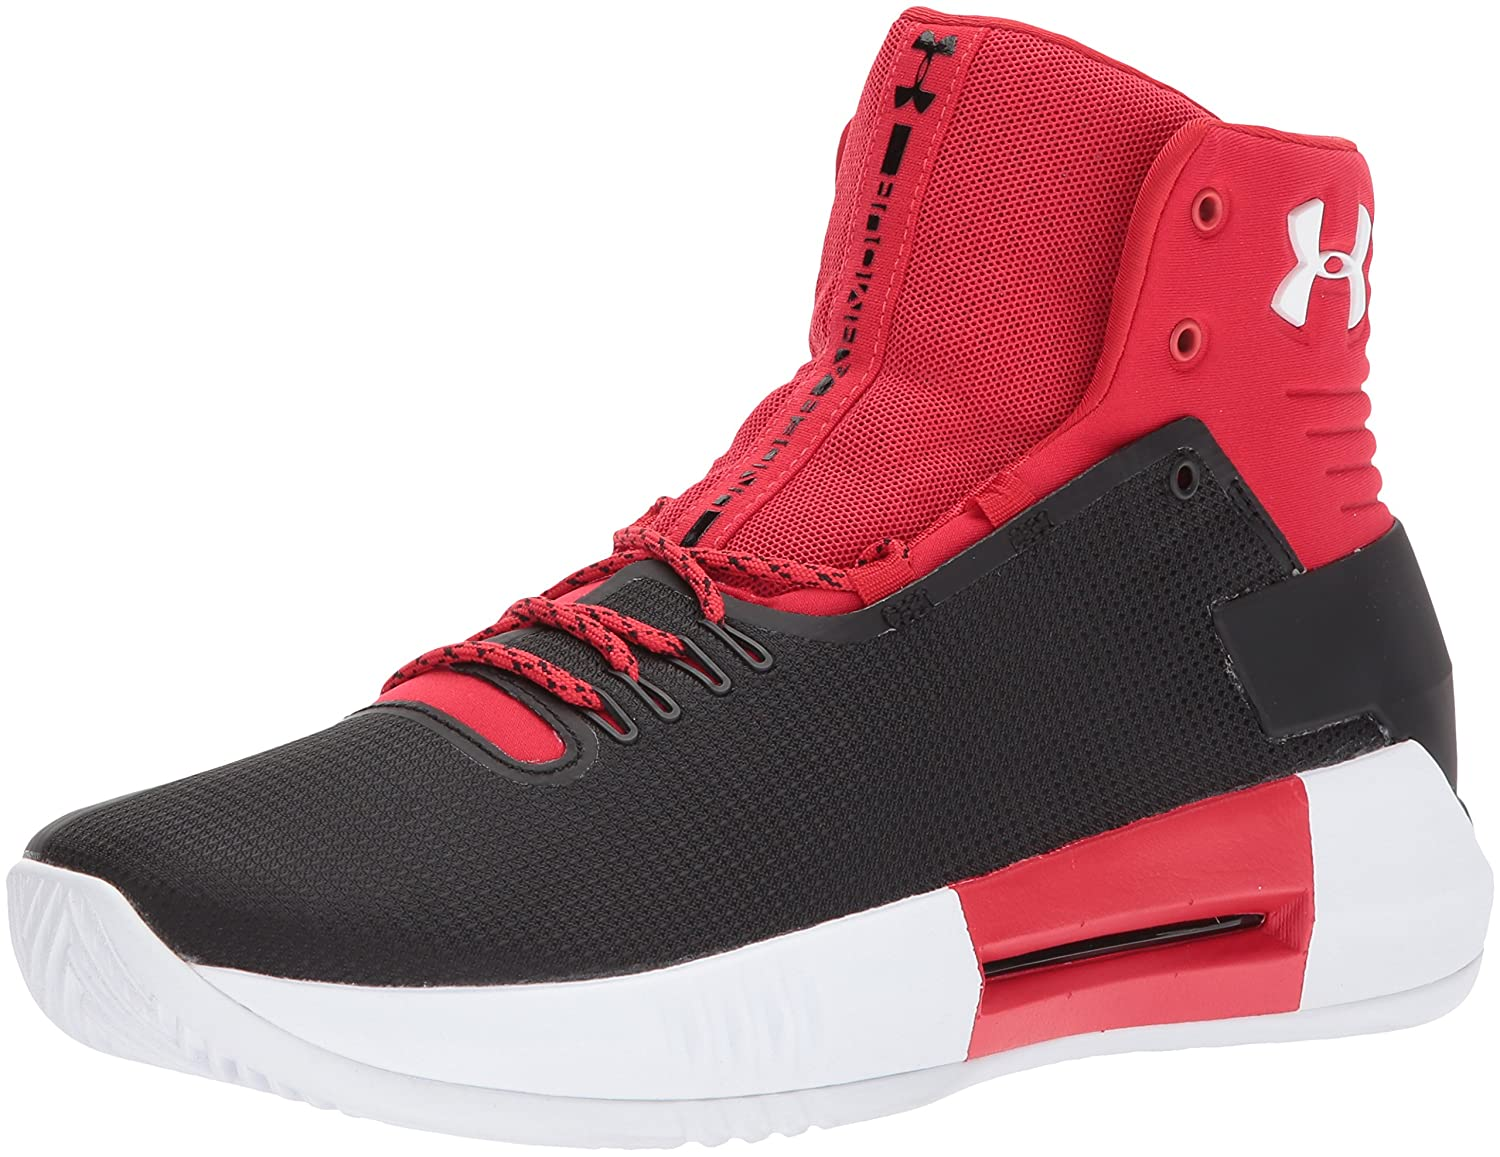 Under Armour Men's Team Drive 4 Basketball Shoe B01MYZKJ3Z 14 M US|Red (600)/Black